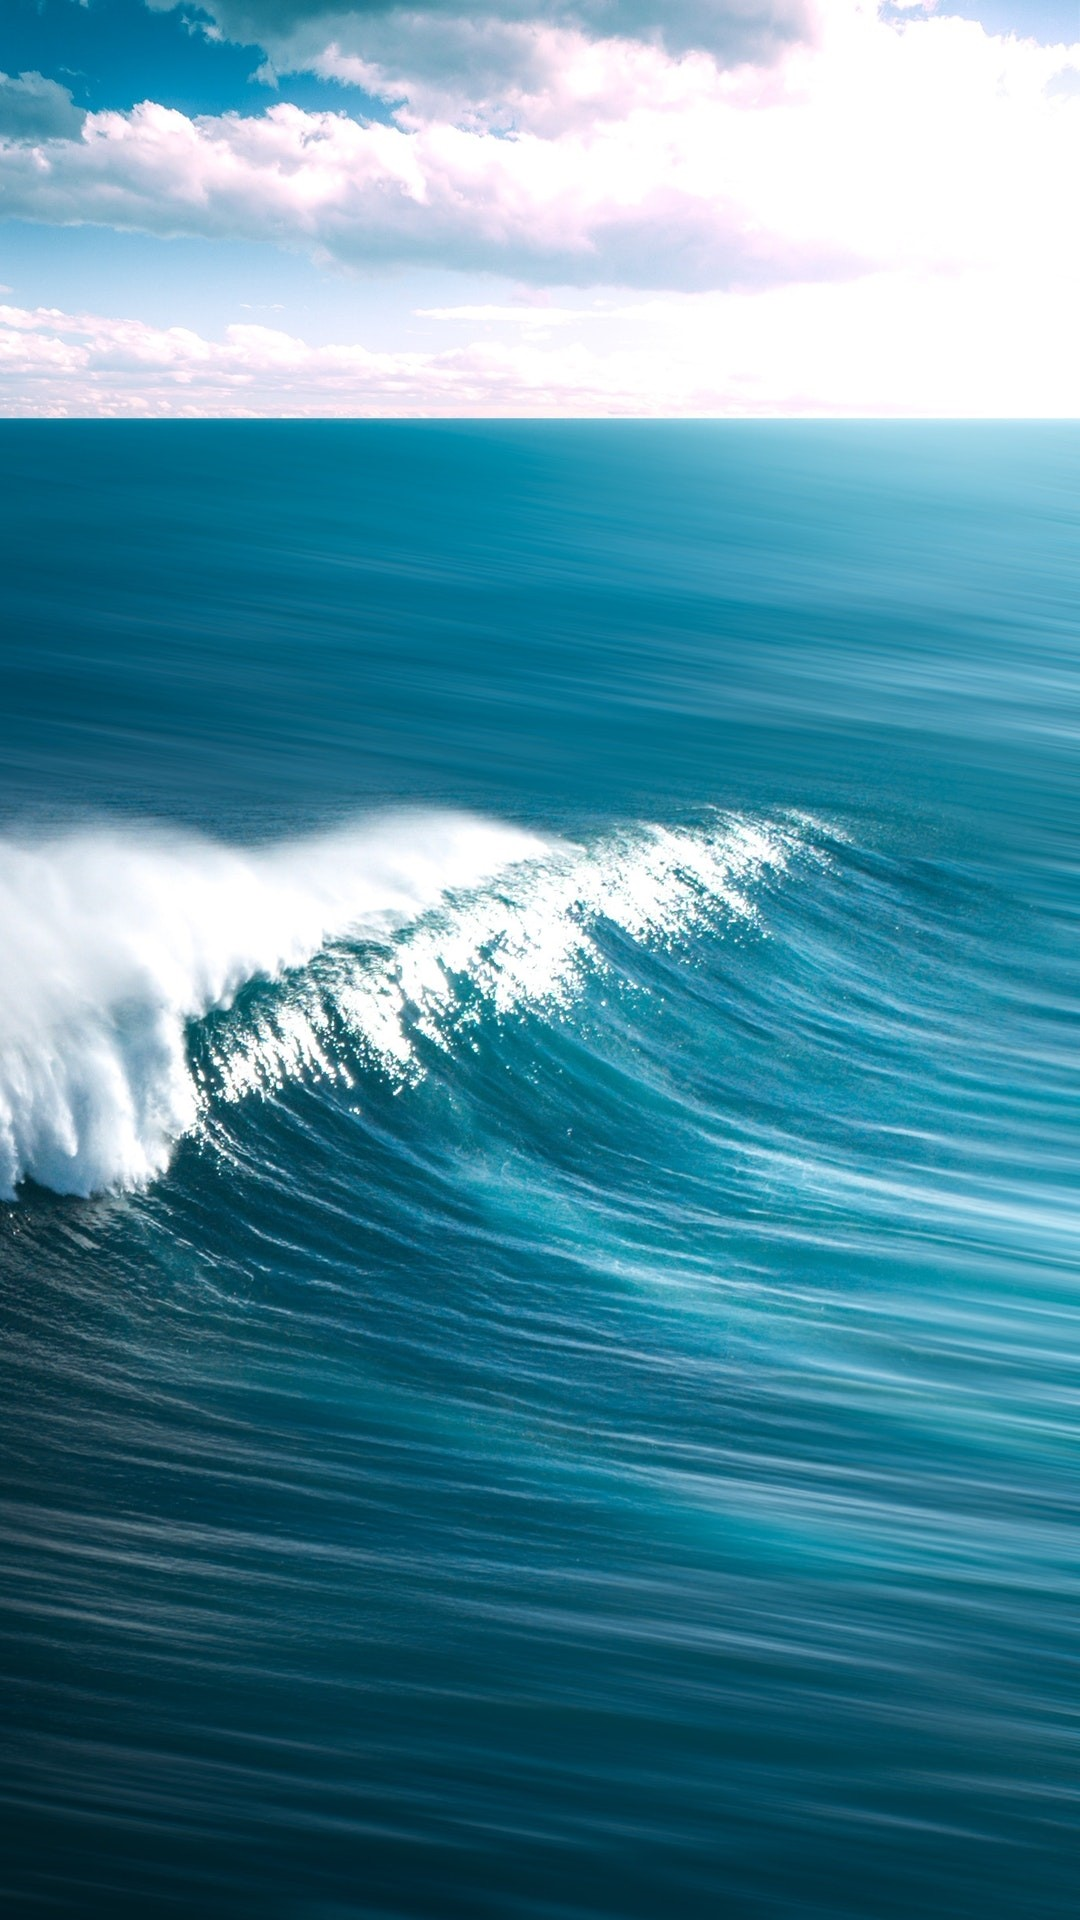 Ocean Waves free wallpaper for android